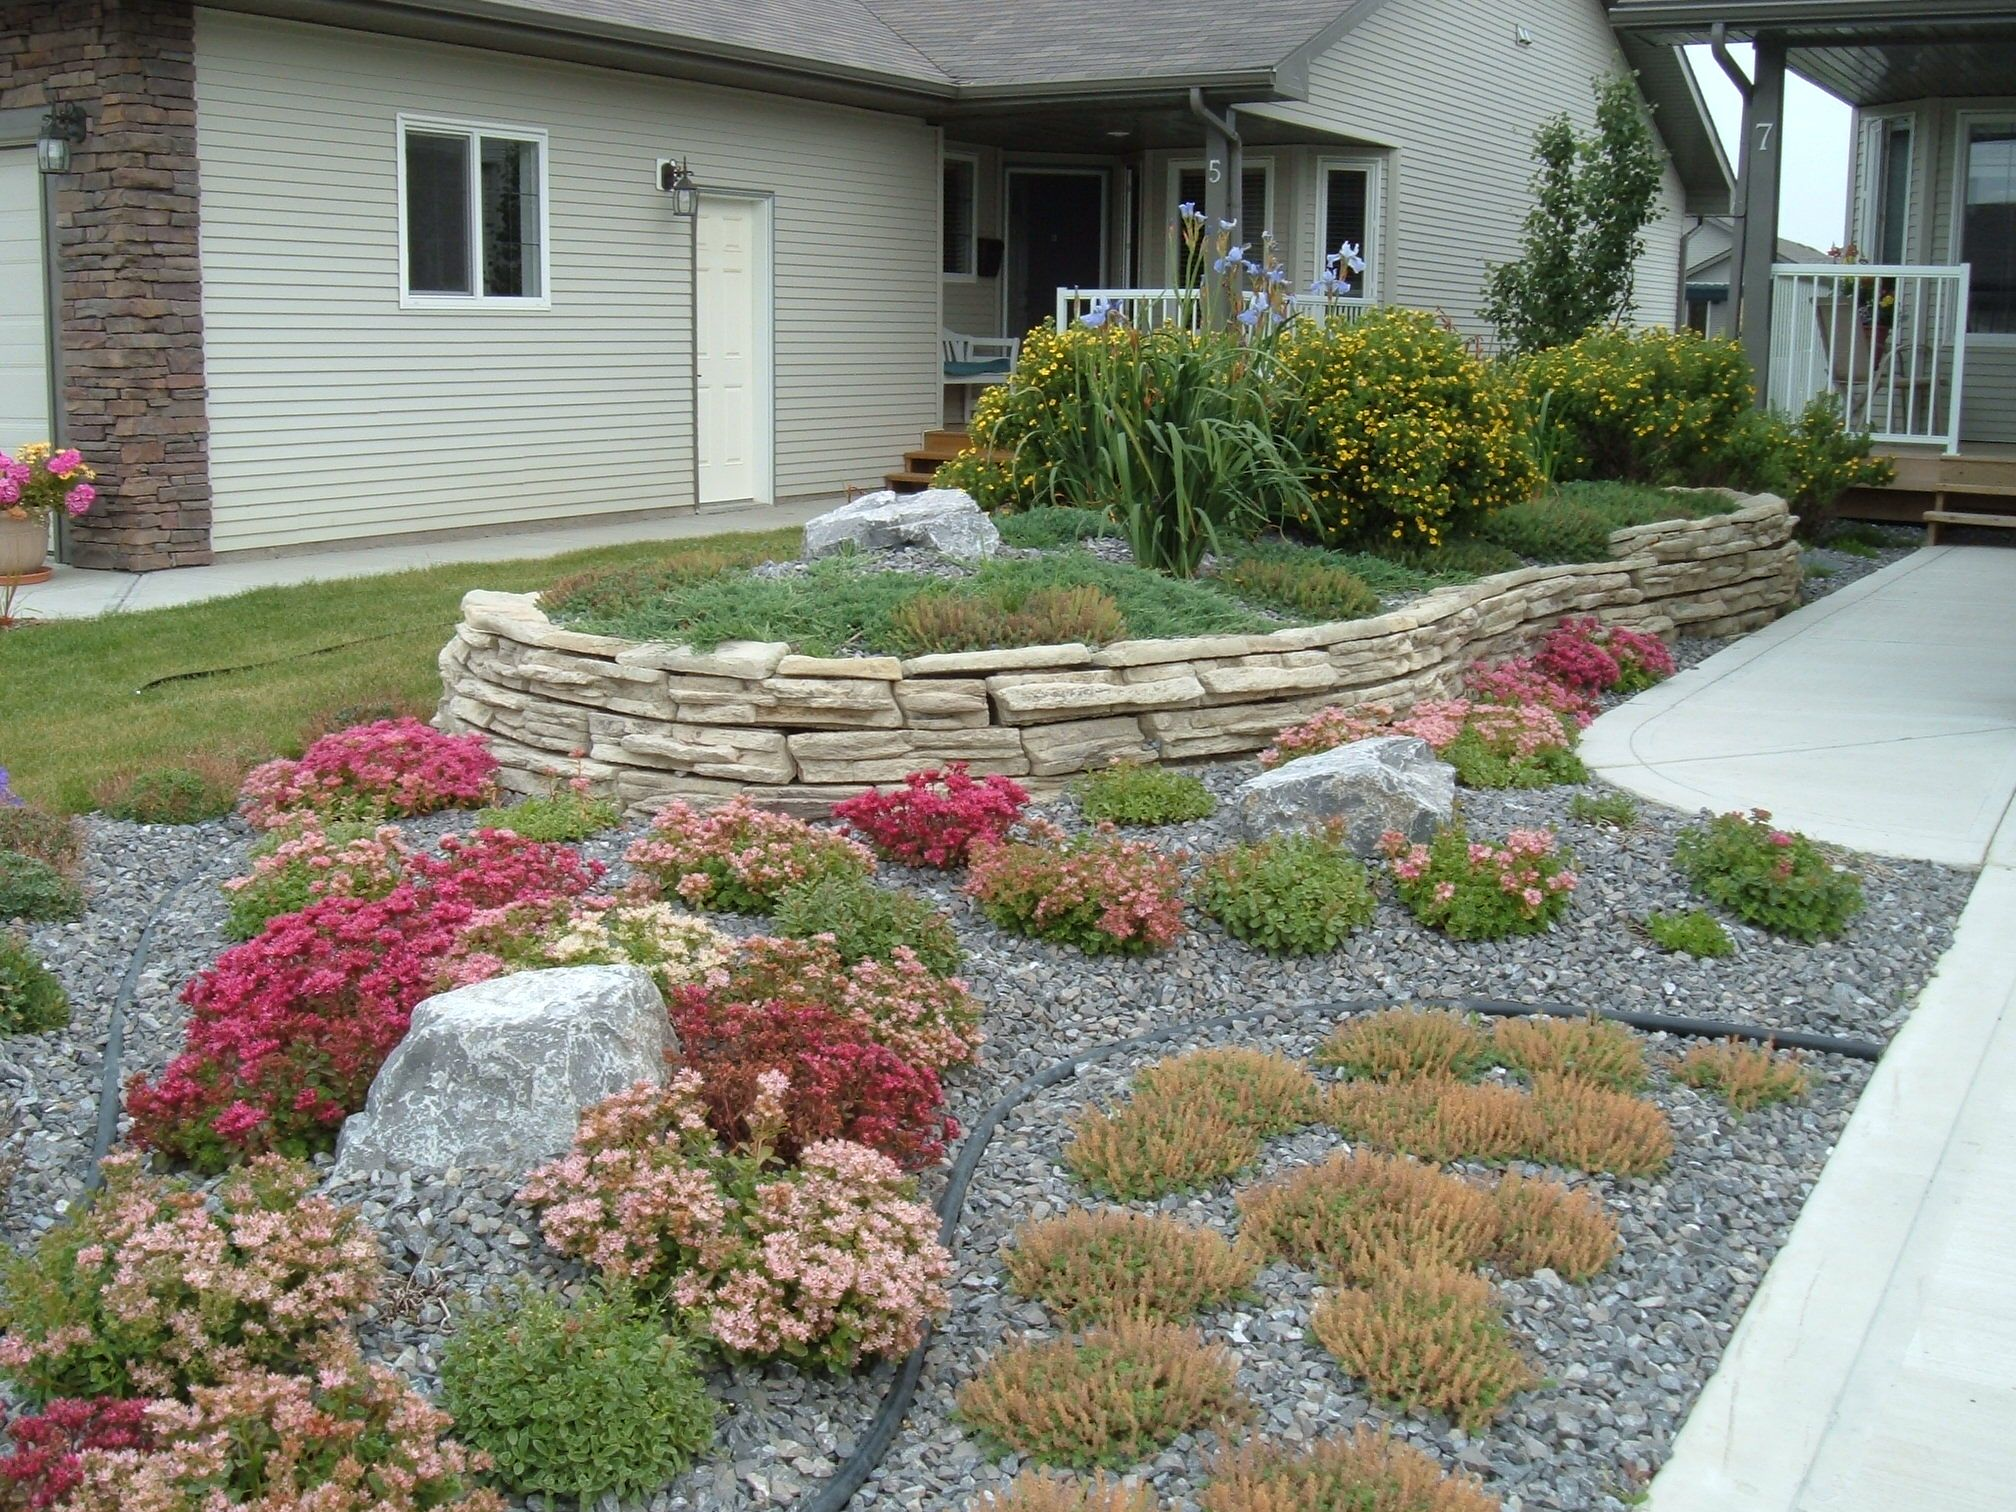 Minimal maintenance landscaping a no lawn front yard with for Creative small garden ideas